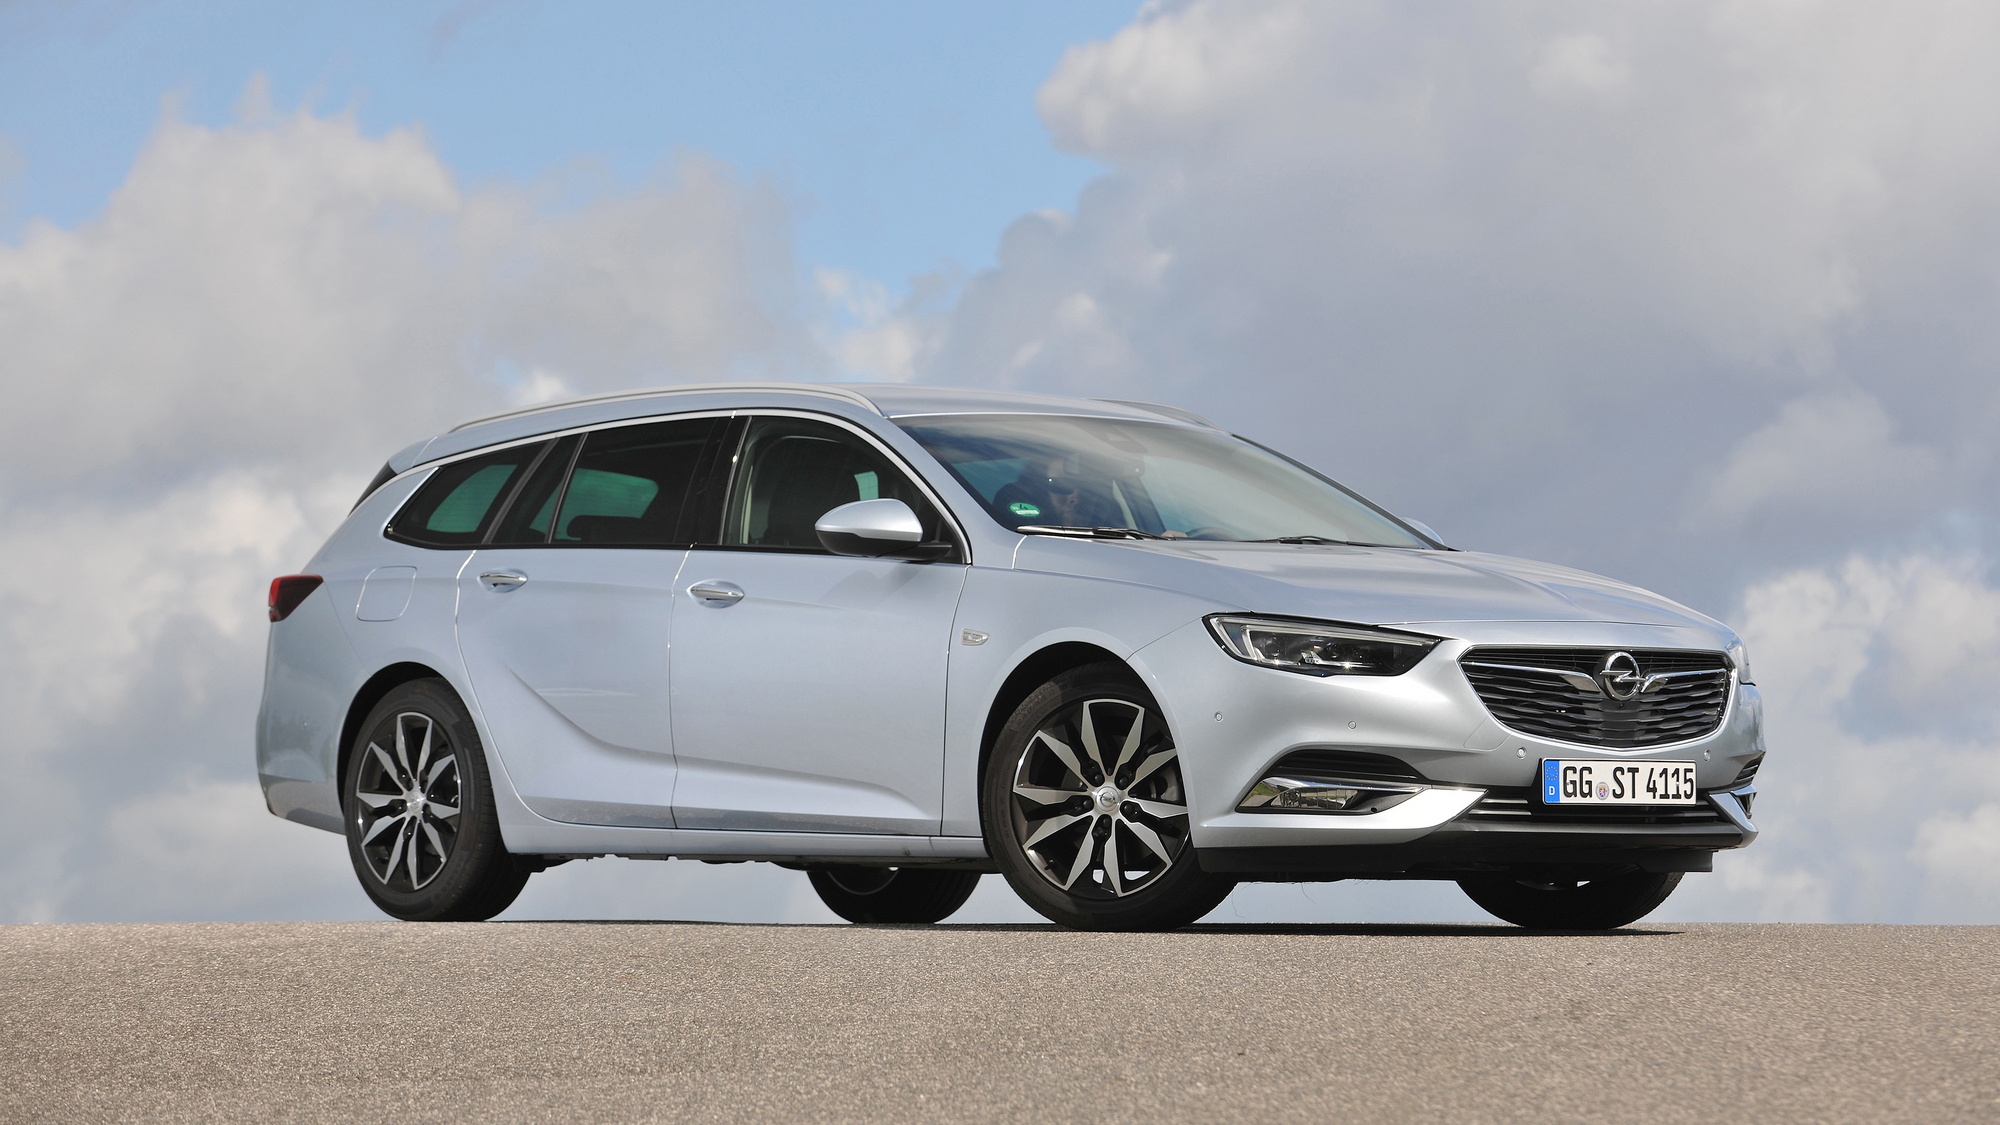 Opel Insignia Sports Tourer 2.0 Turbo D Selective